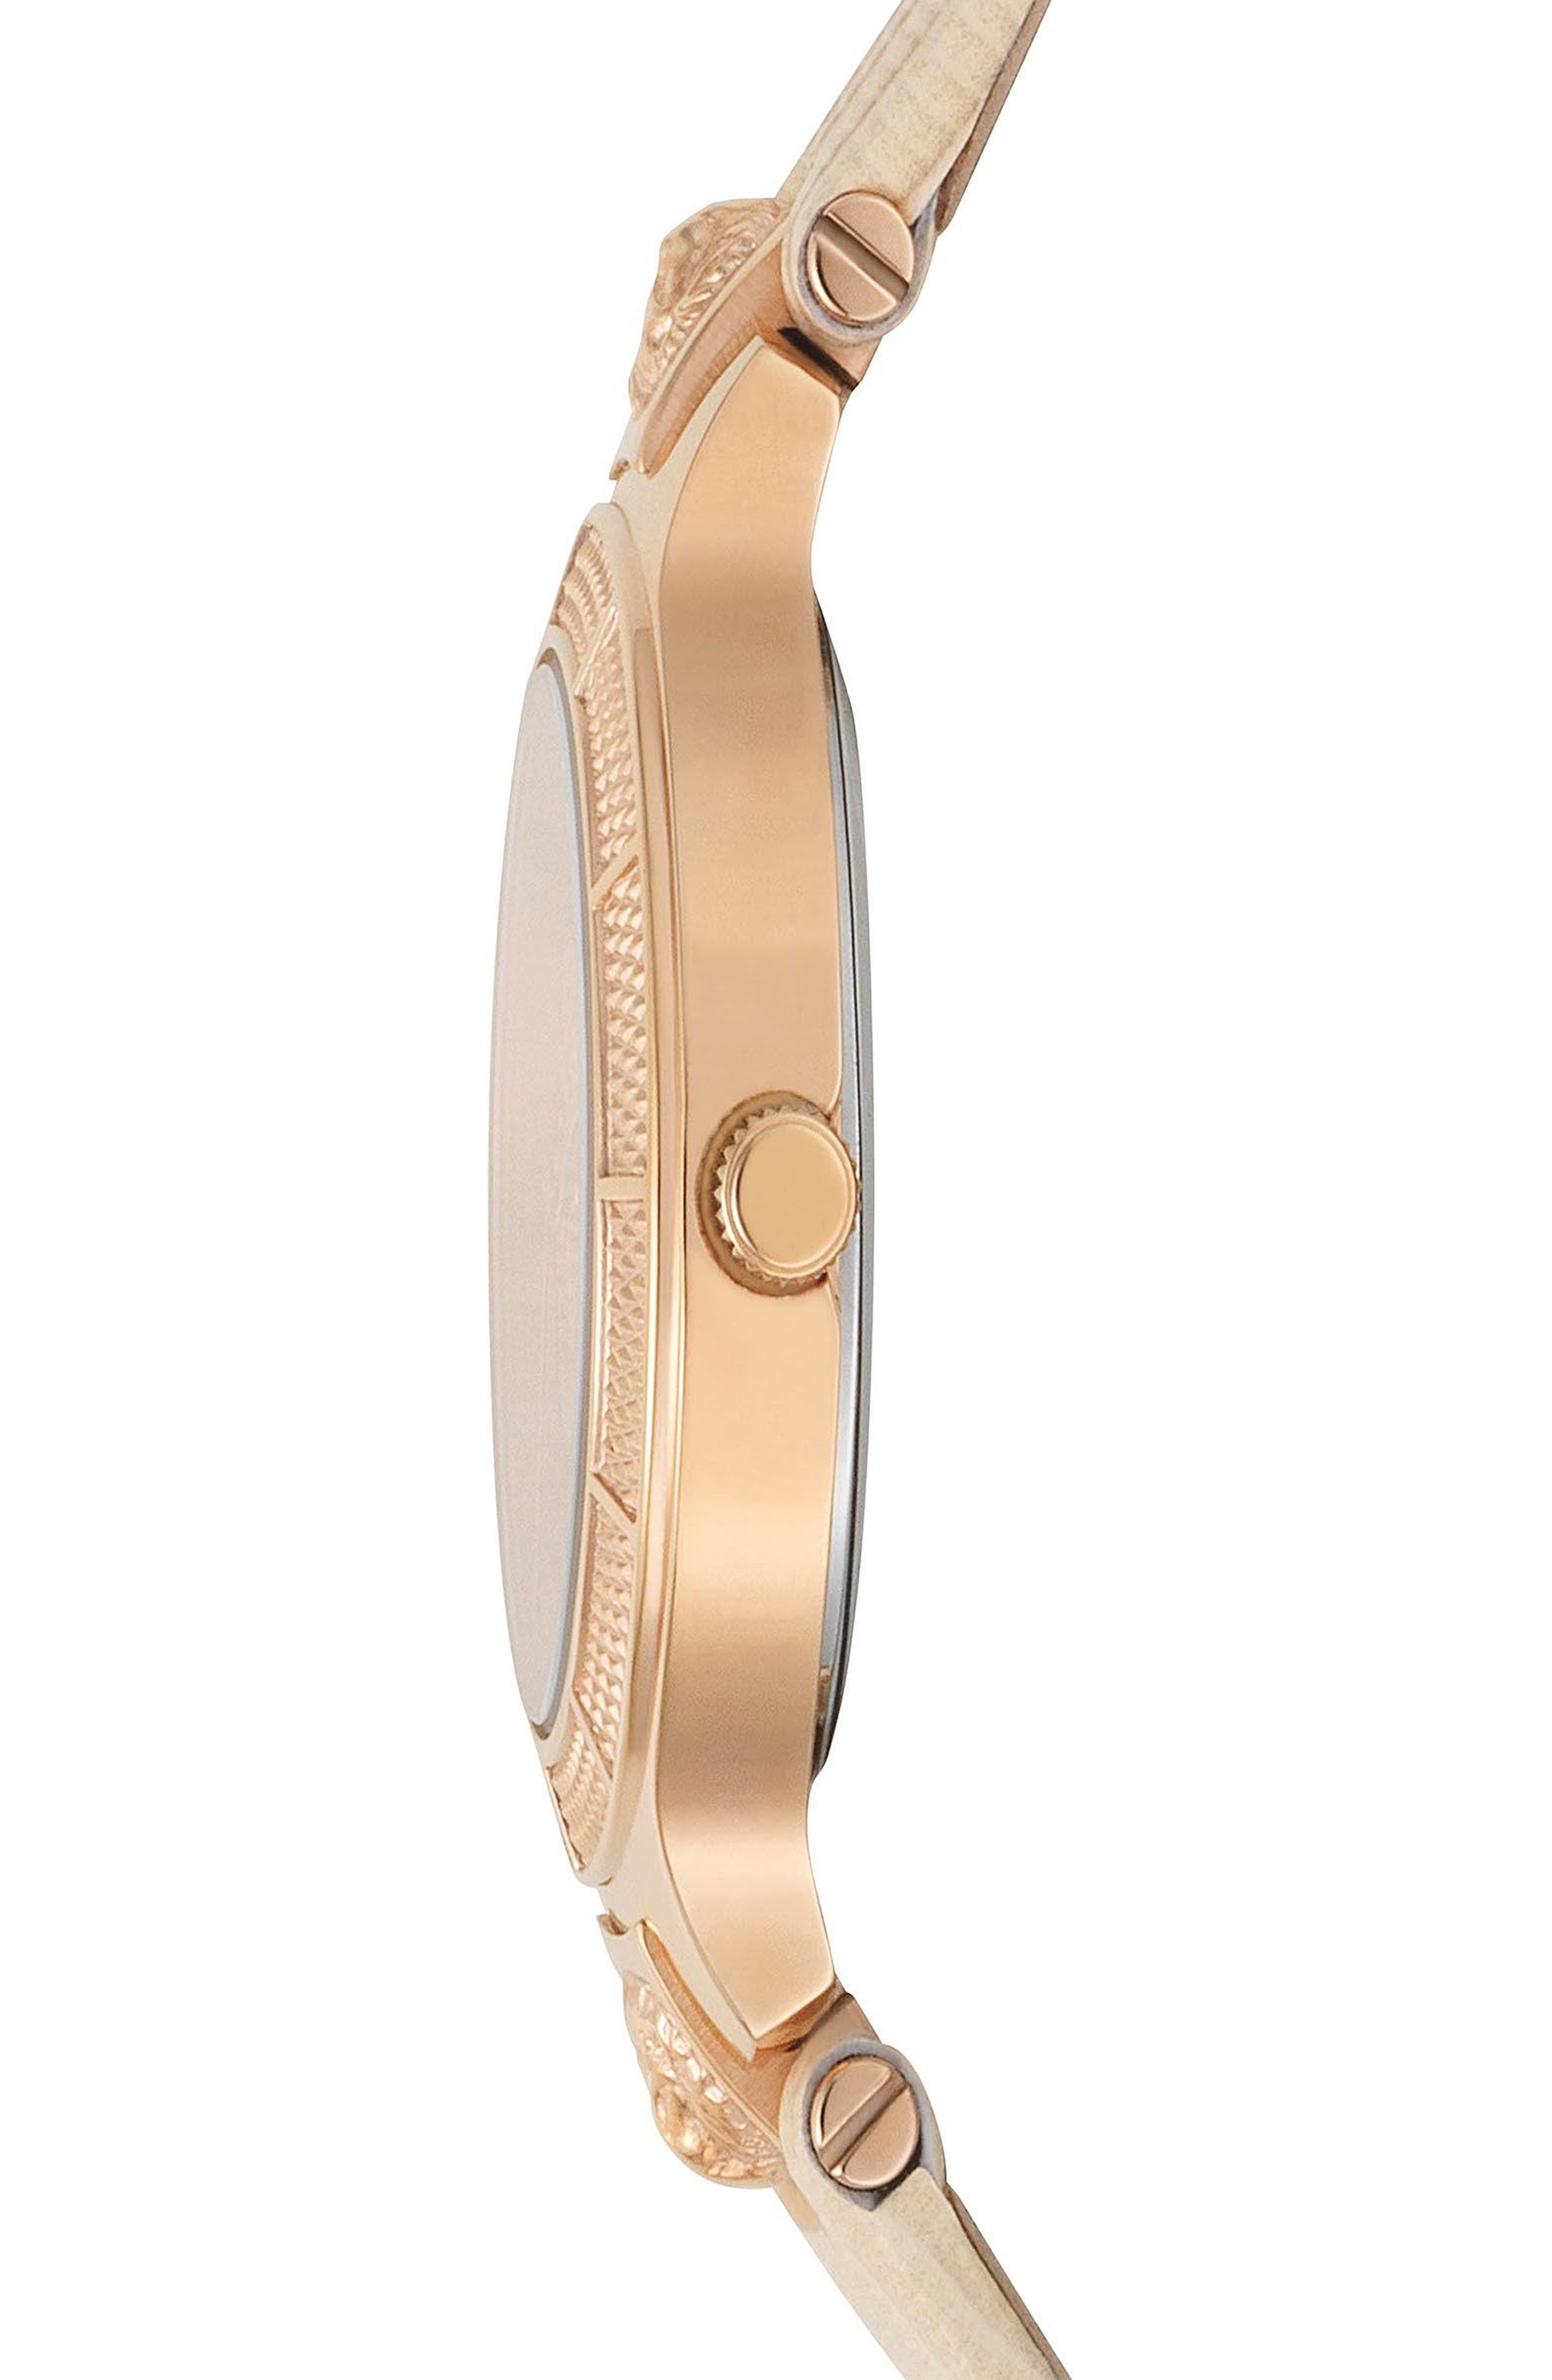 VERSUS VERSACE, Claremont Leather Strap Watch, 32mm, Alternate thumbnail 2, color, PINK/ ROSE GOLD